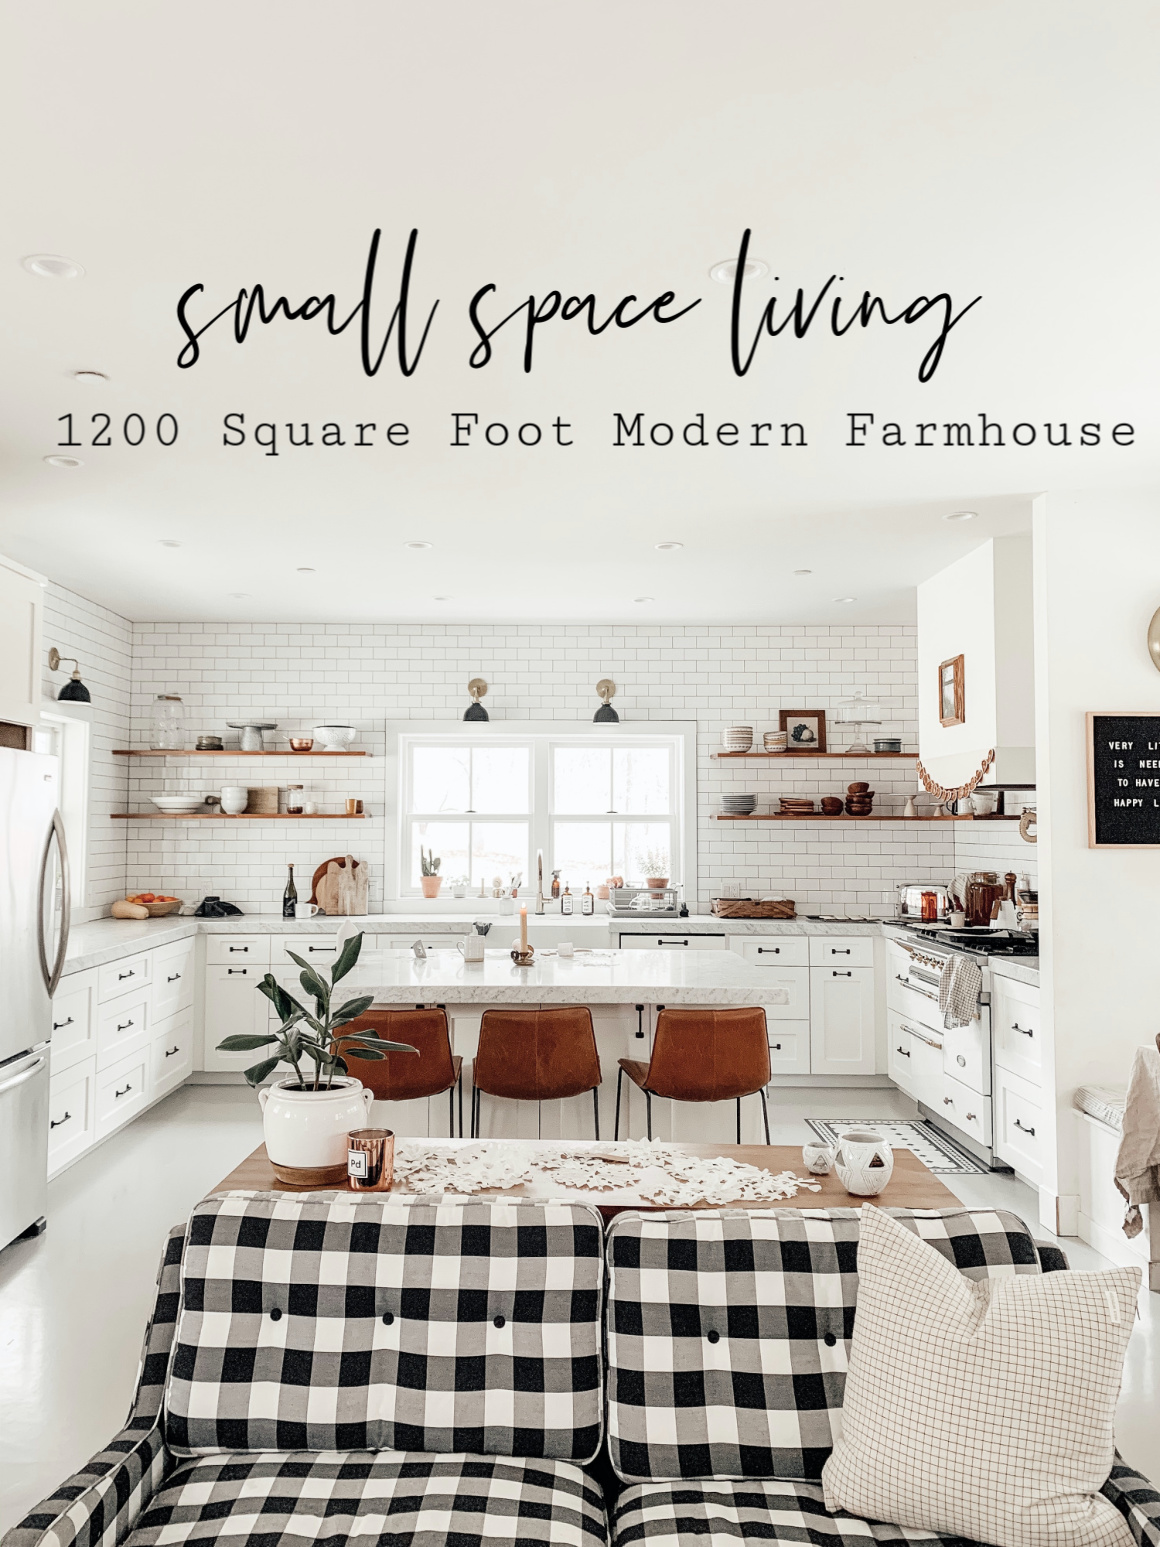 Small Space Living Series 1200 Square Foot Modern Farmhouse Nesting With Grace